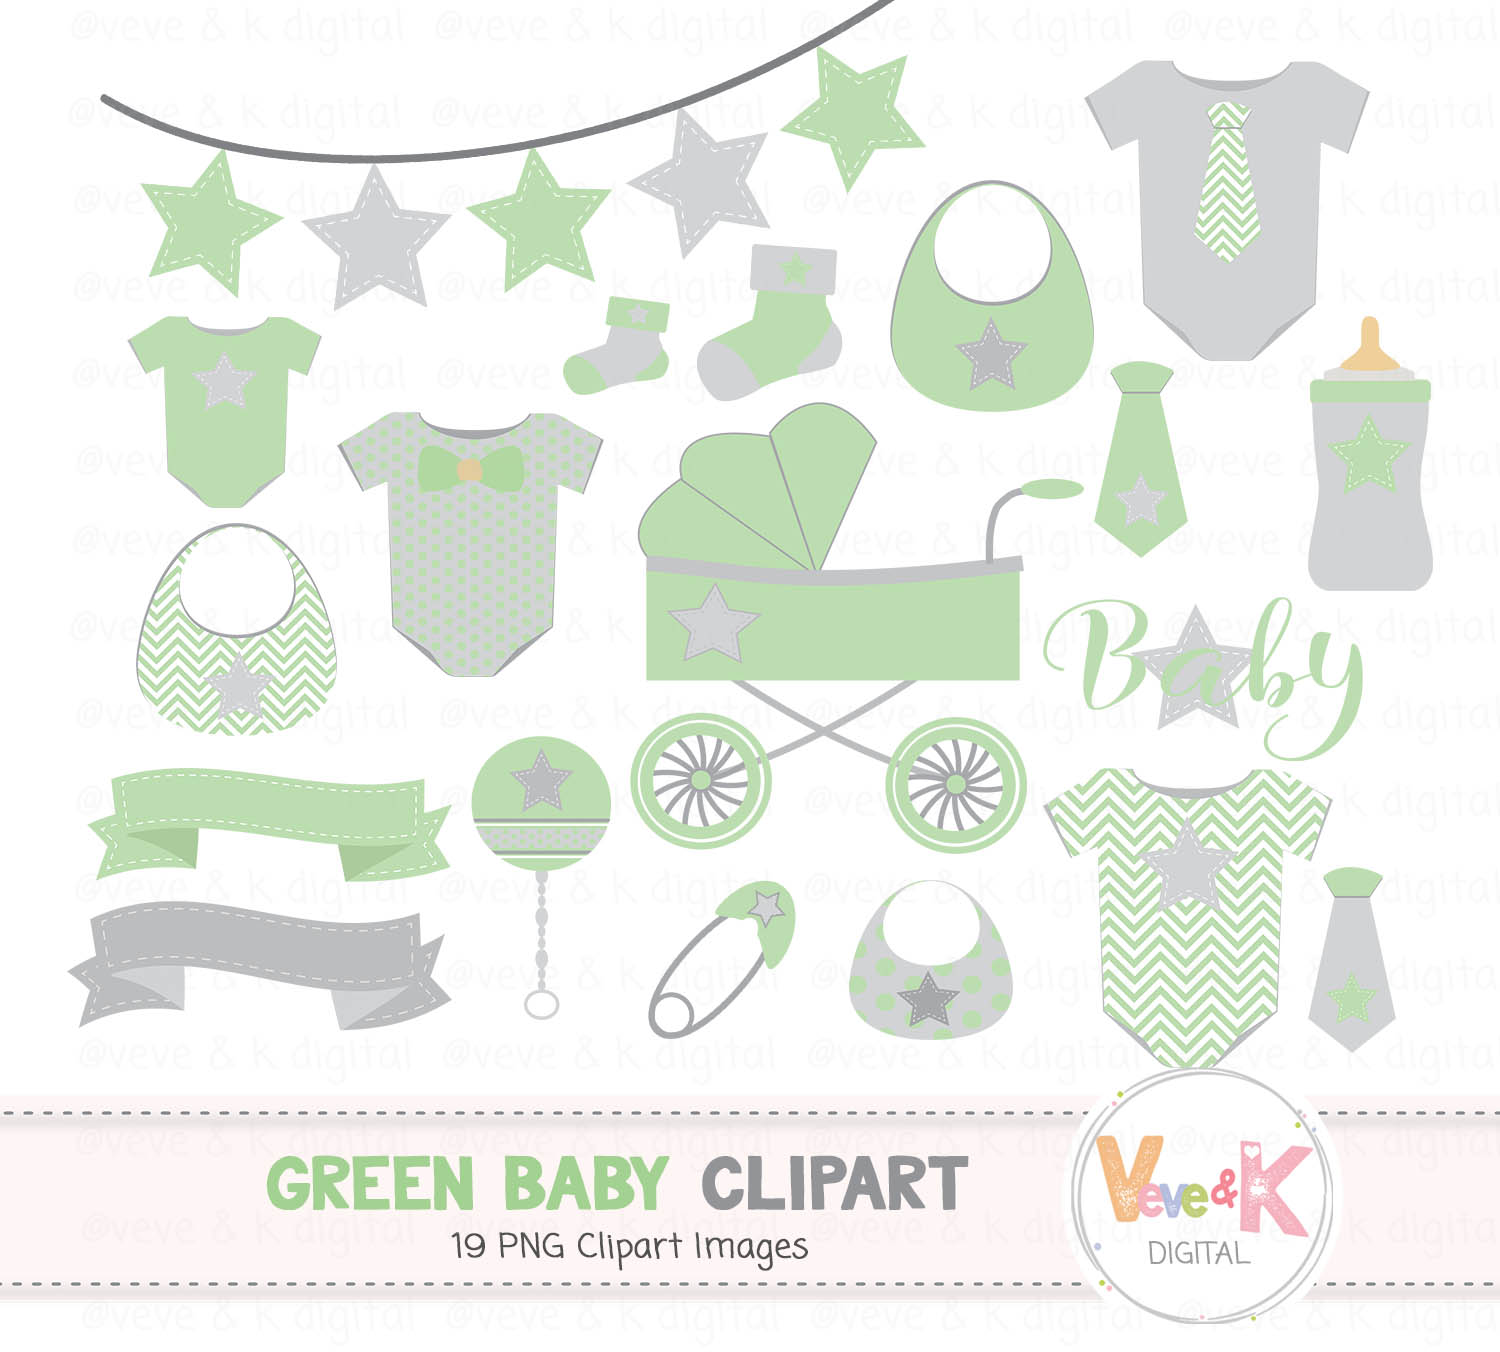 Green Baby Clipart Gender Neutral Baby Clipart Baby Shower Clipart